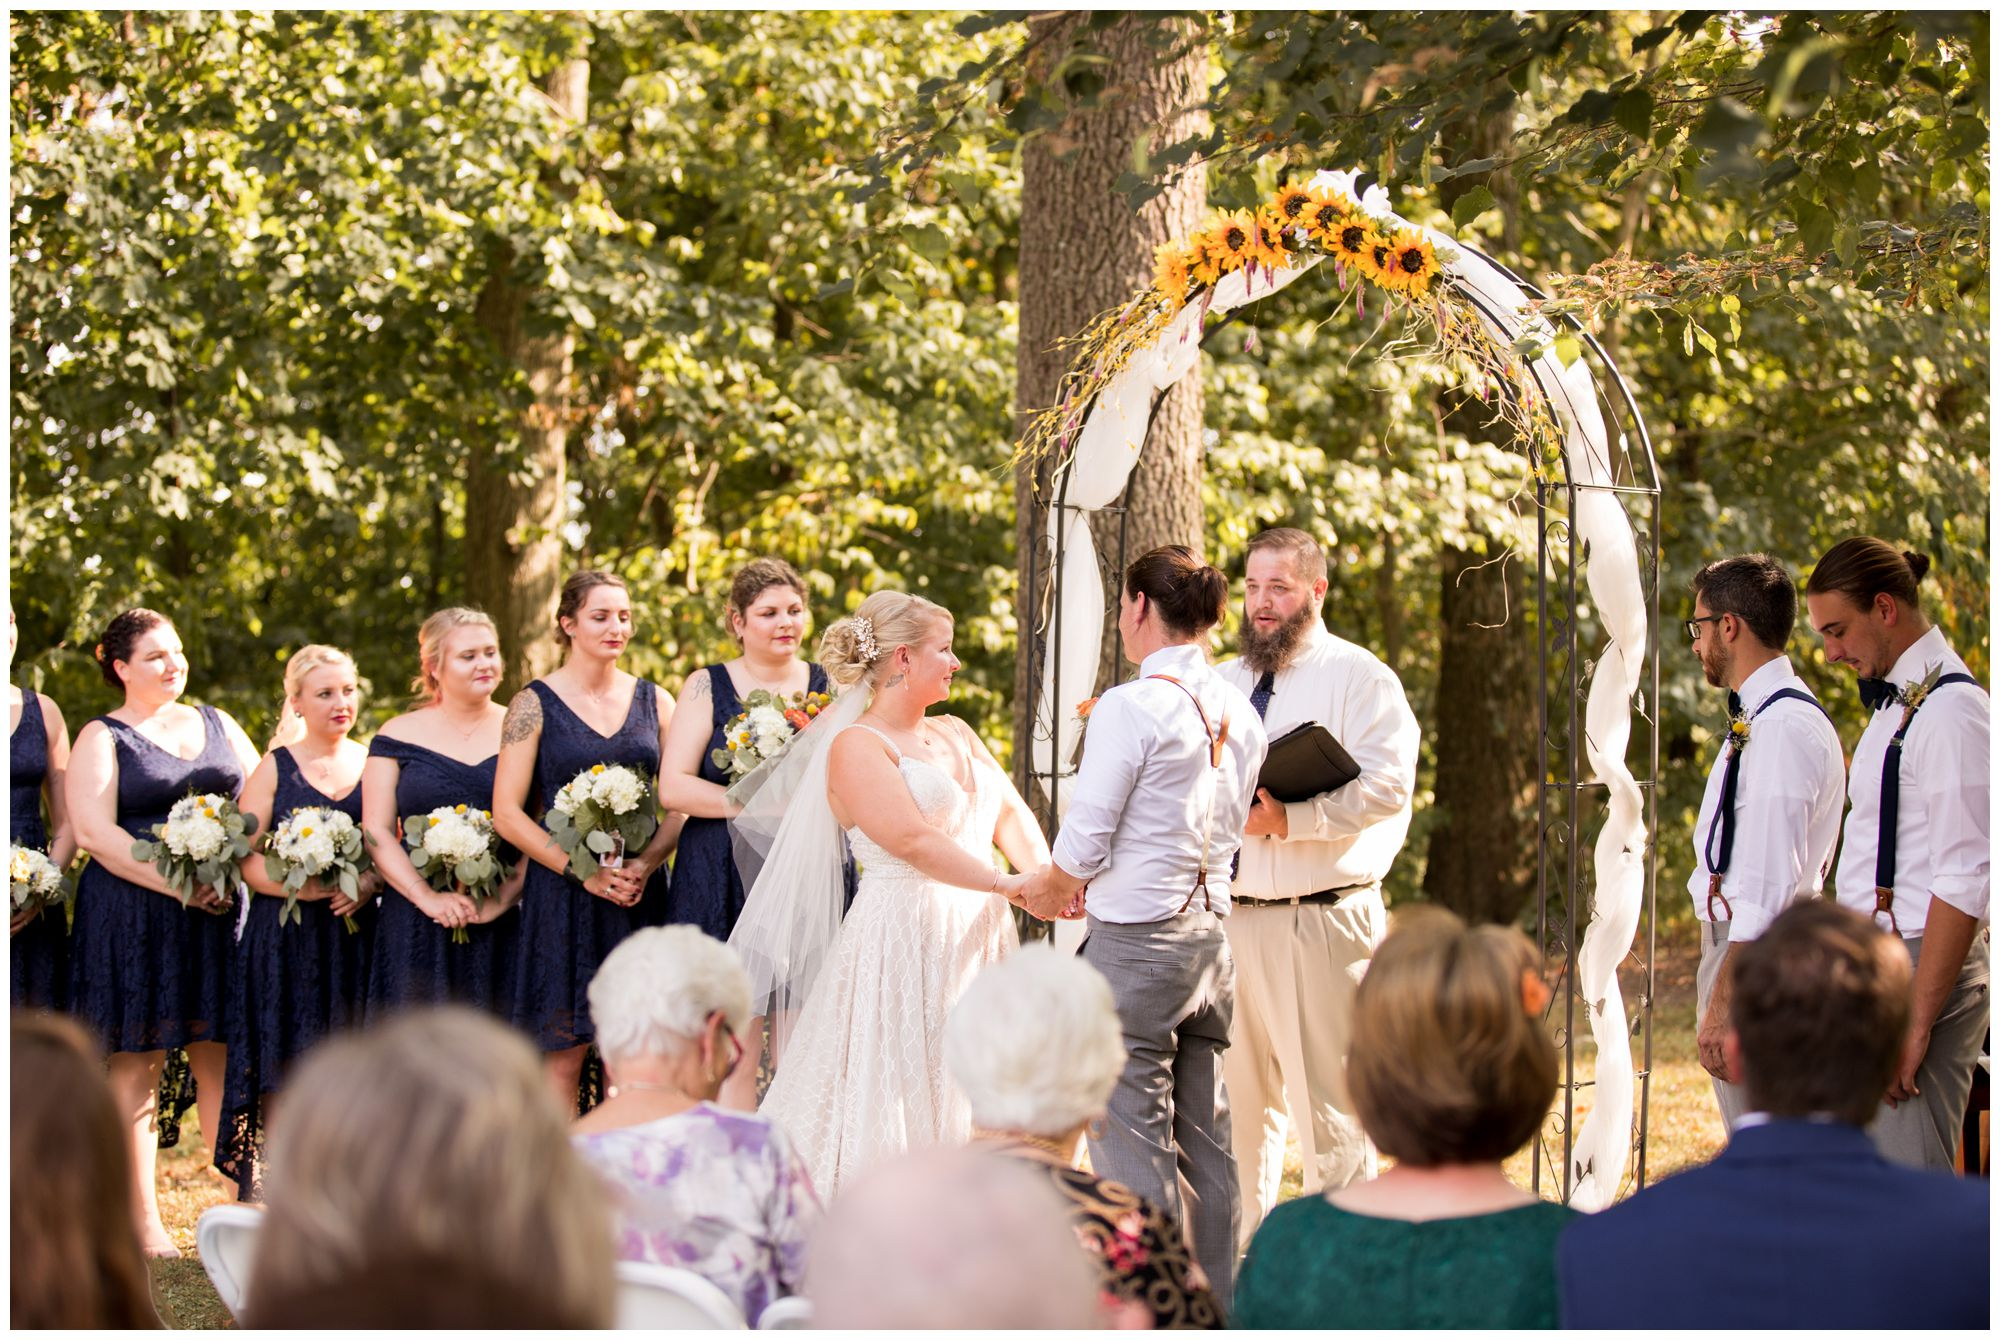 outdoor ceremony at Forest Park Inn in Noblesville Indiana